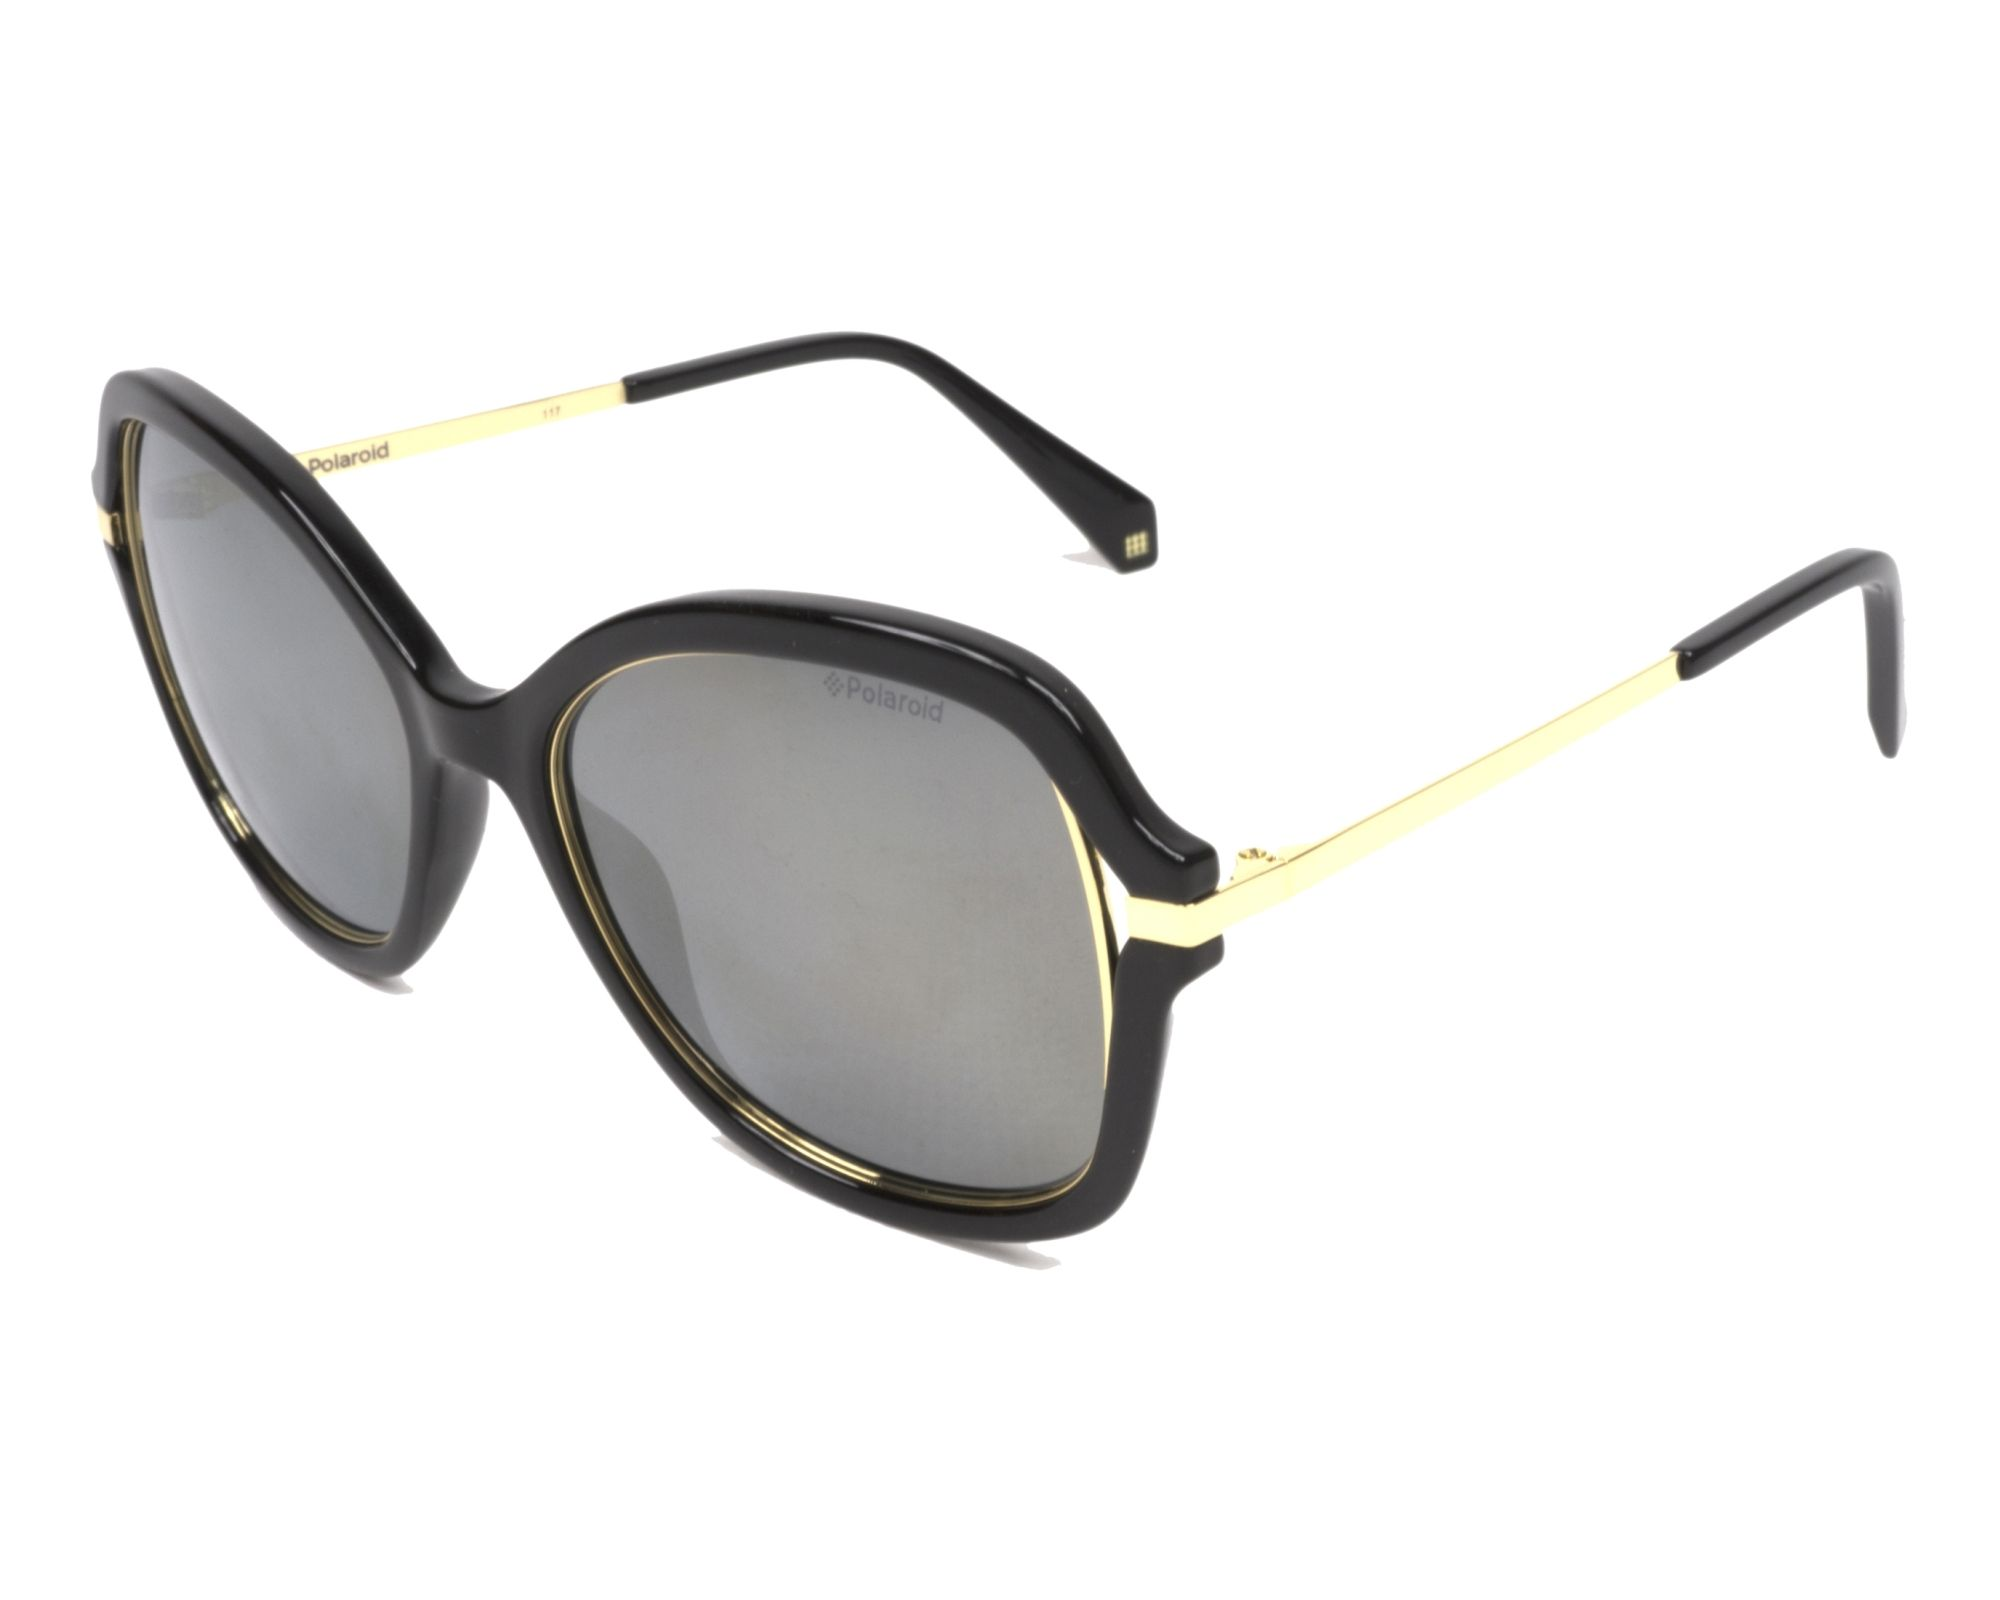 c2fbda3050 Sunglasses Polaroid PLD-4068-S 2M2 LM 55-17 Black Gold profile